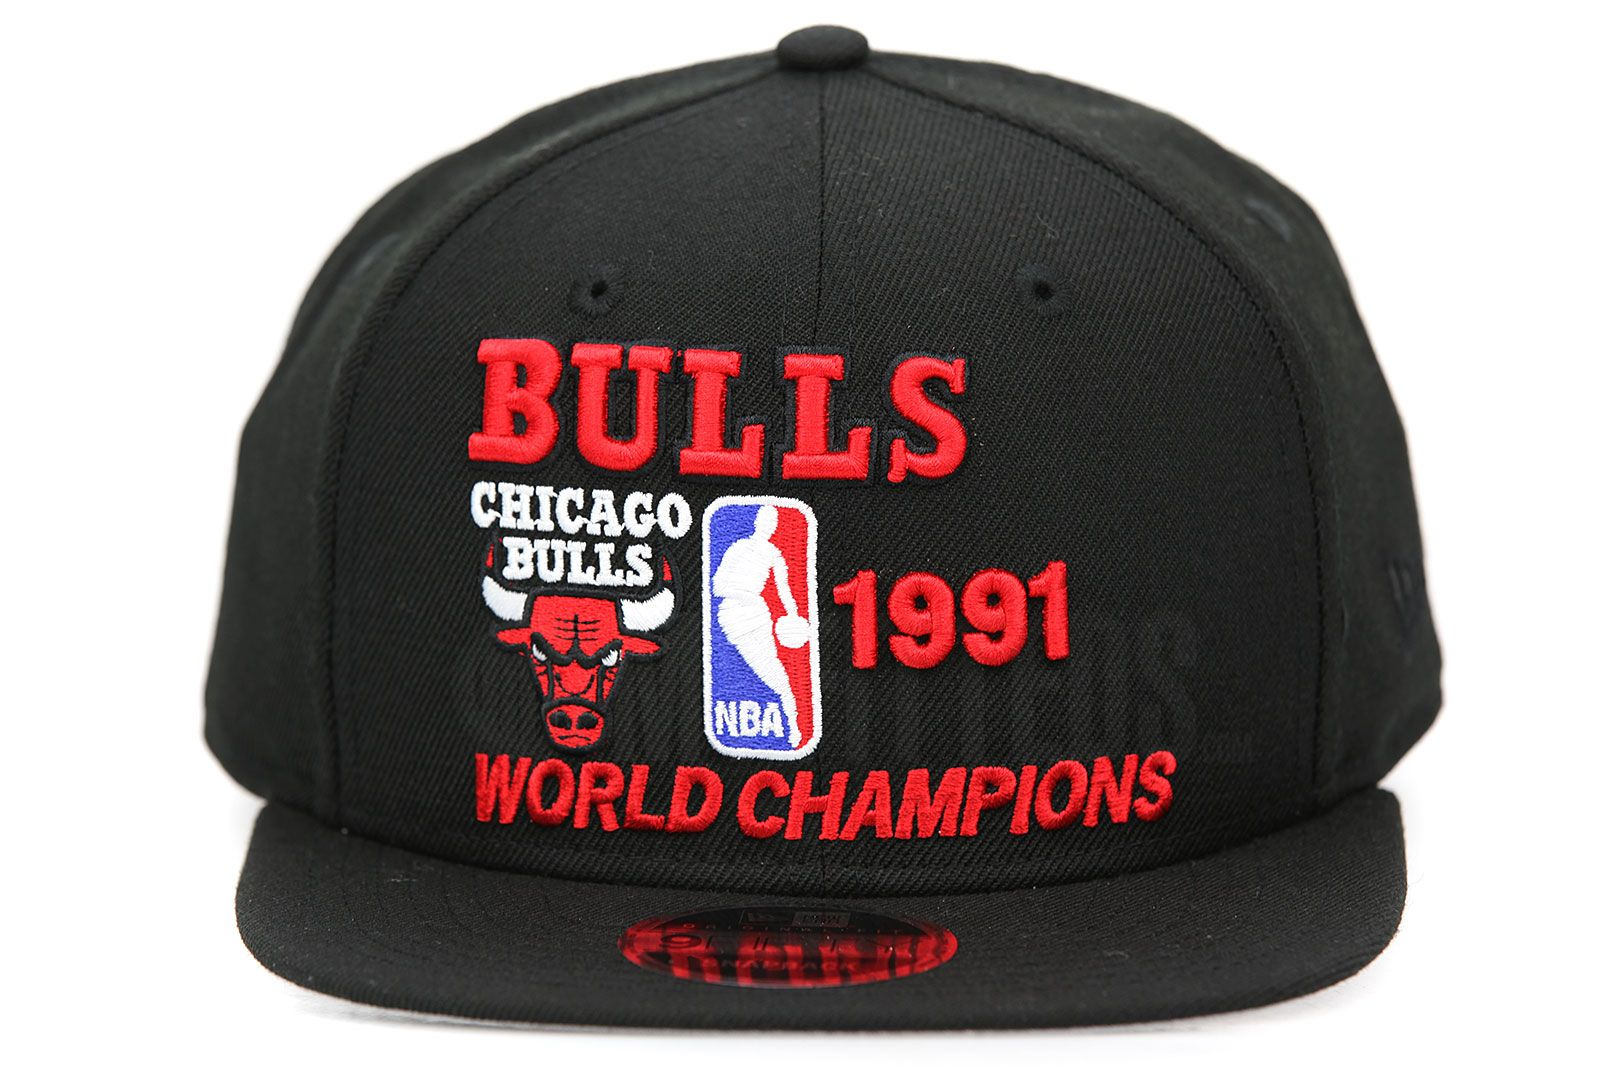 Chicago Bulls 1991 NBA Finals Champions Jet Black Scarlet Original Fit New  Era Snapback 7641354b482